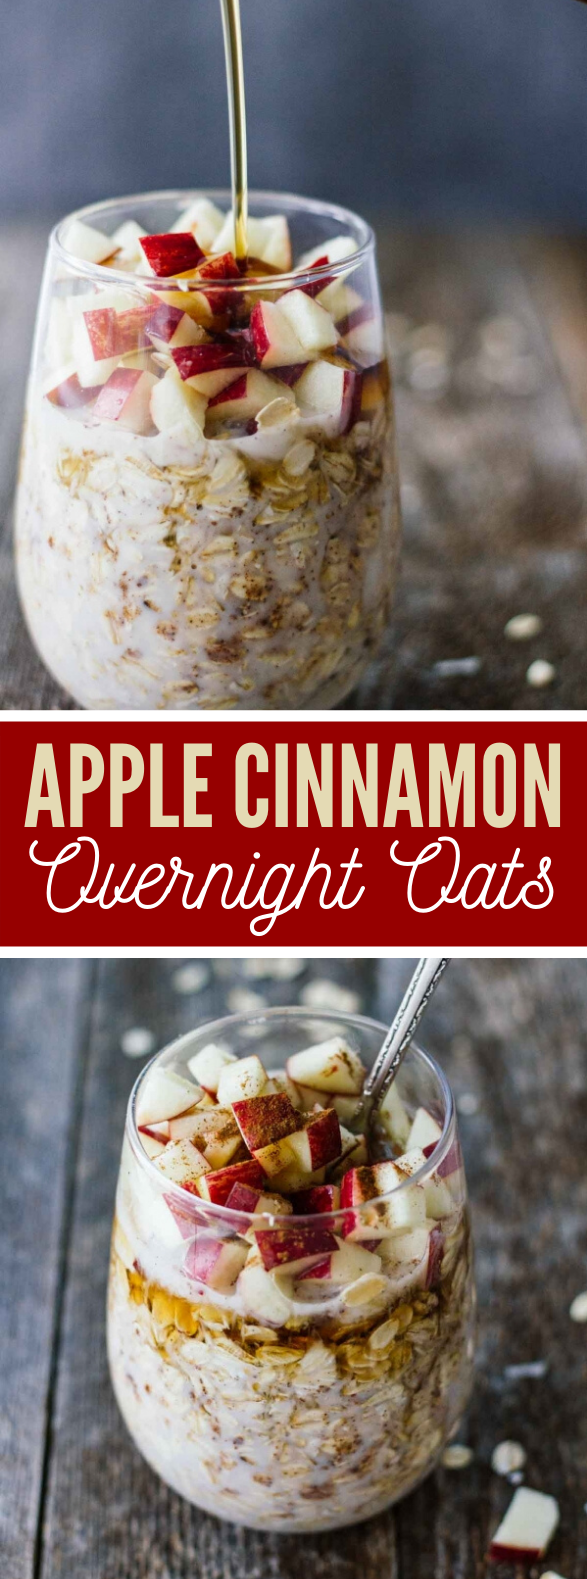 APPLE CINNAMON OVERNIGHT OATS #diet #healthy